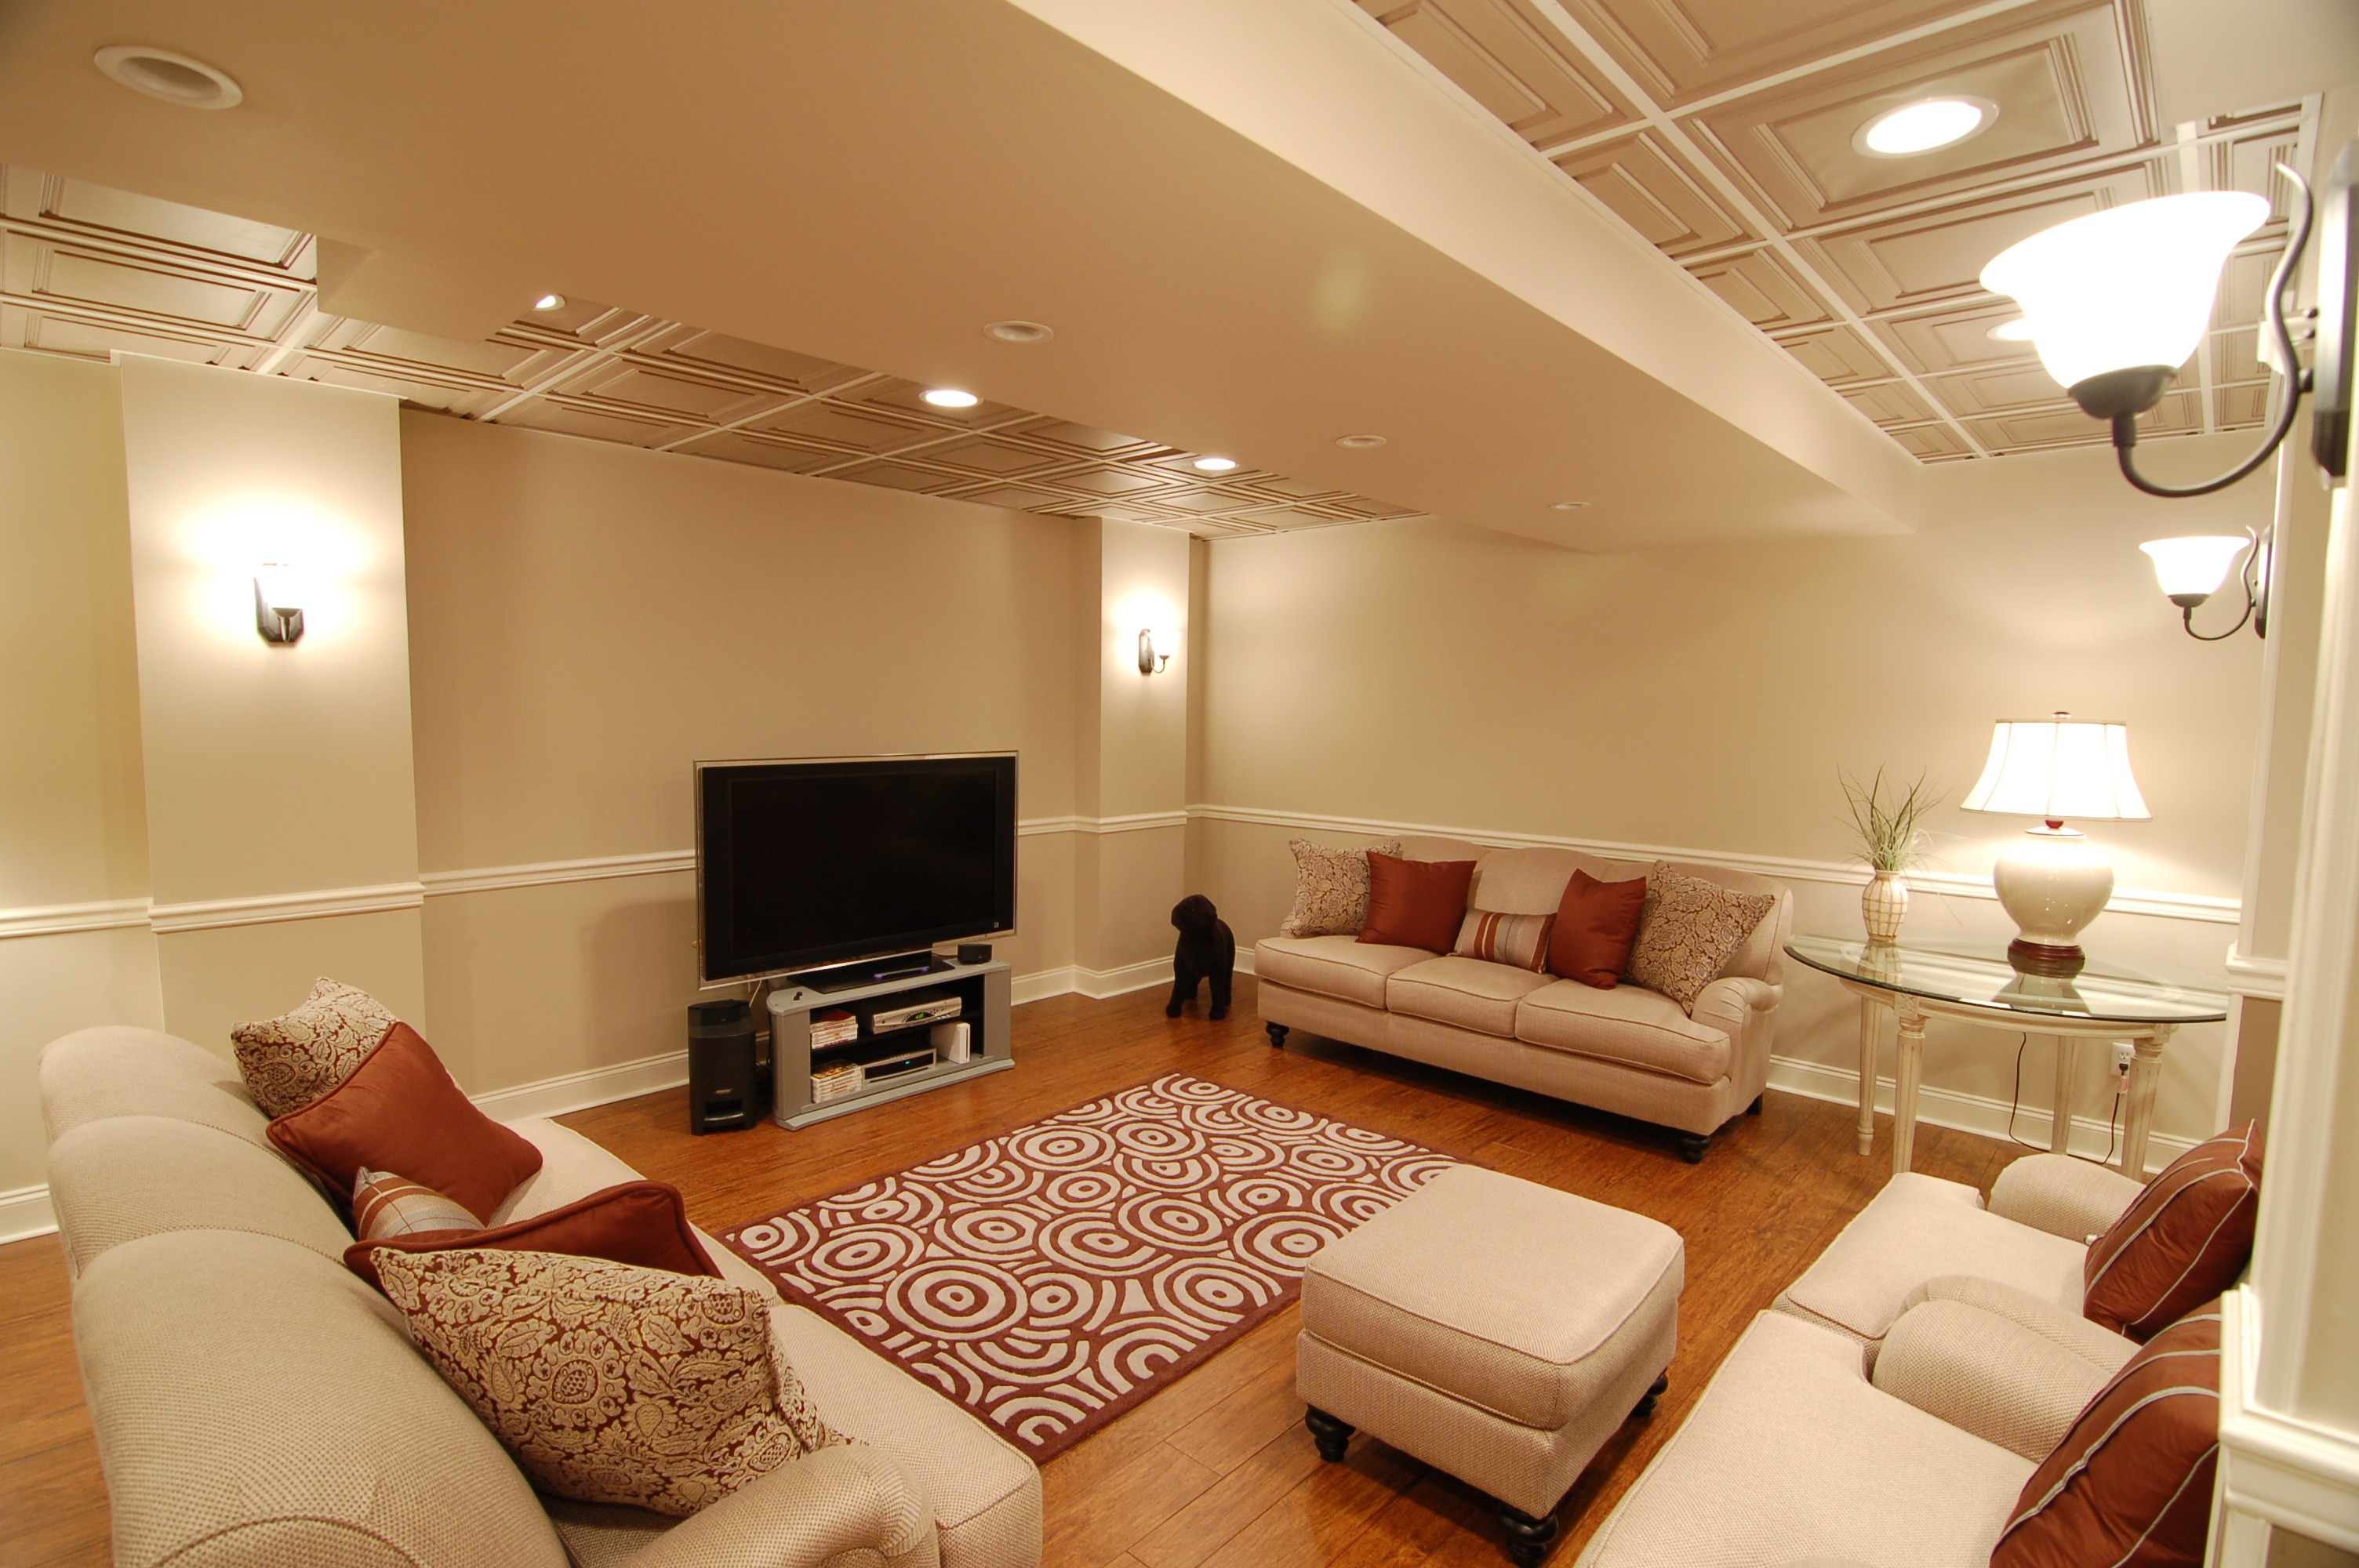 Nj basement remodeling ideas for your dream basement Basement architect